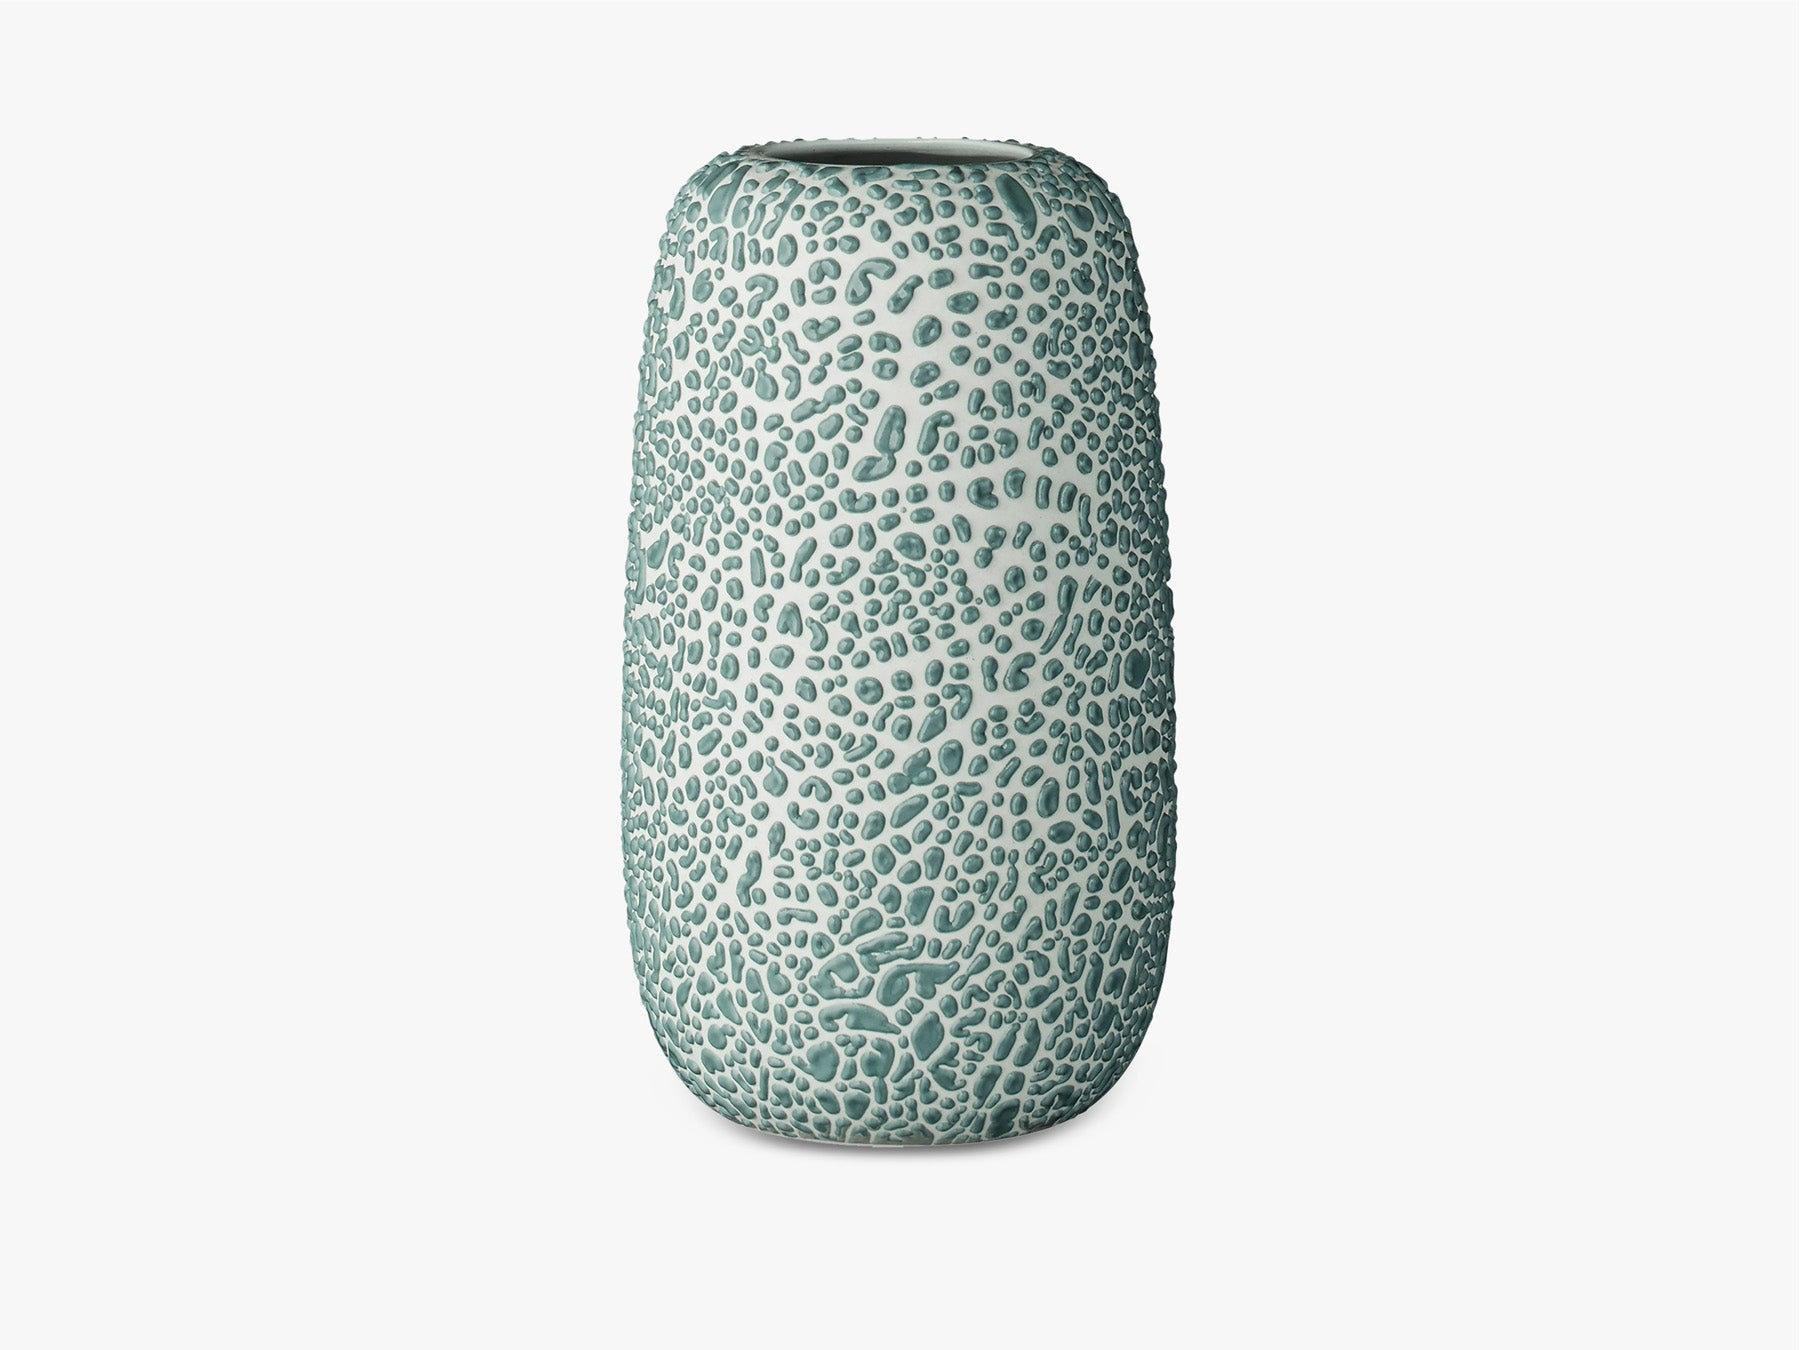 Dotted Glaze Vase - Dusty Blue - Large fra AYTM